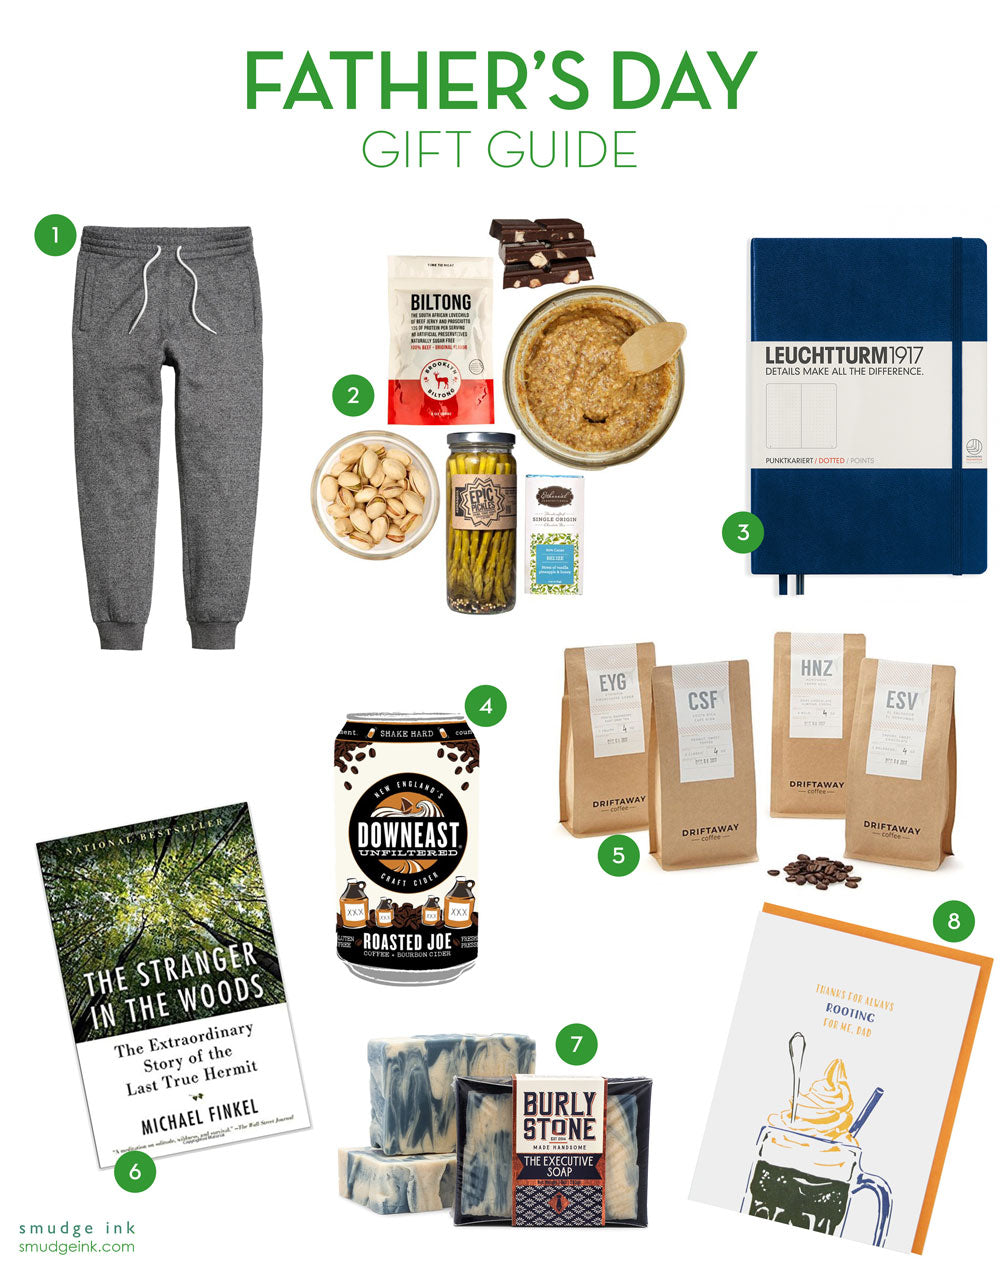 2018 Father's Day Gift Guide by Smudge Ink